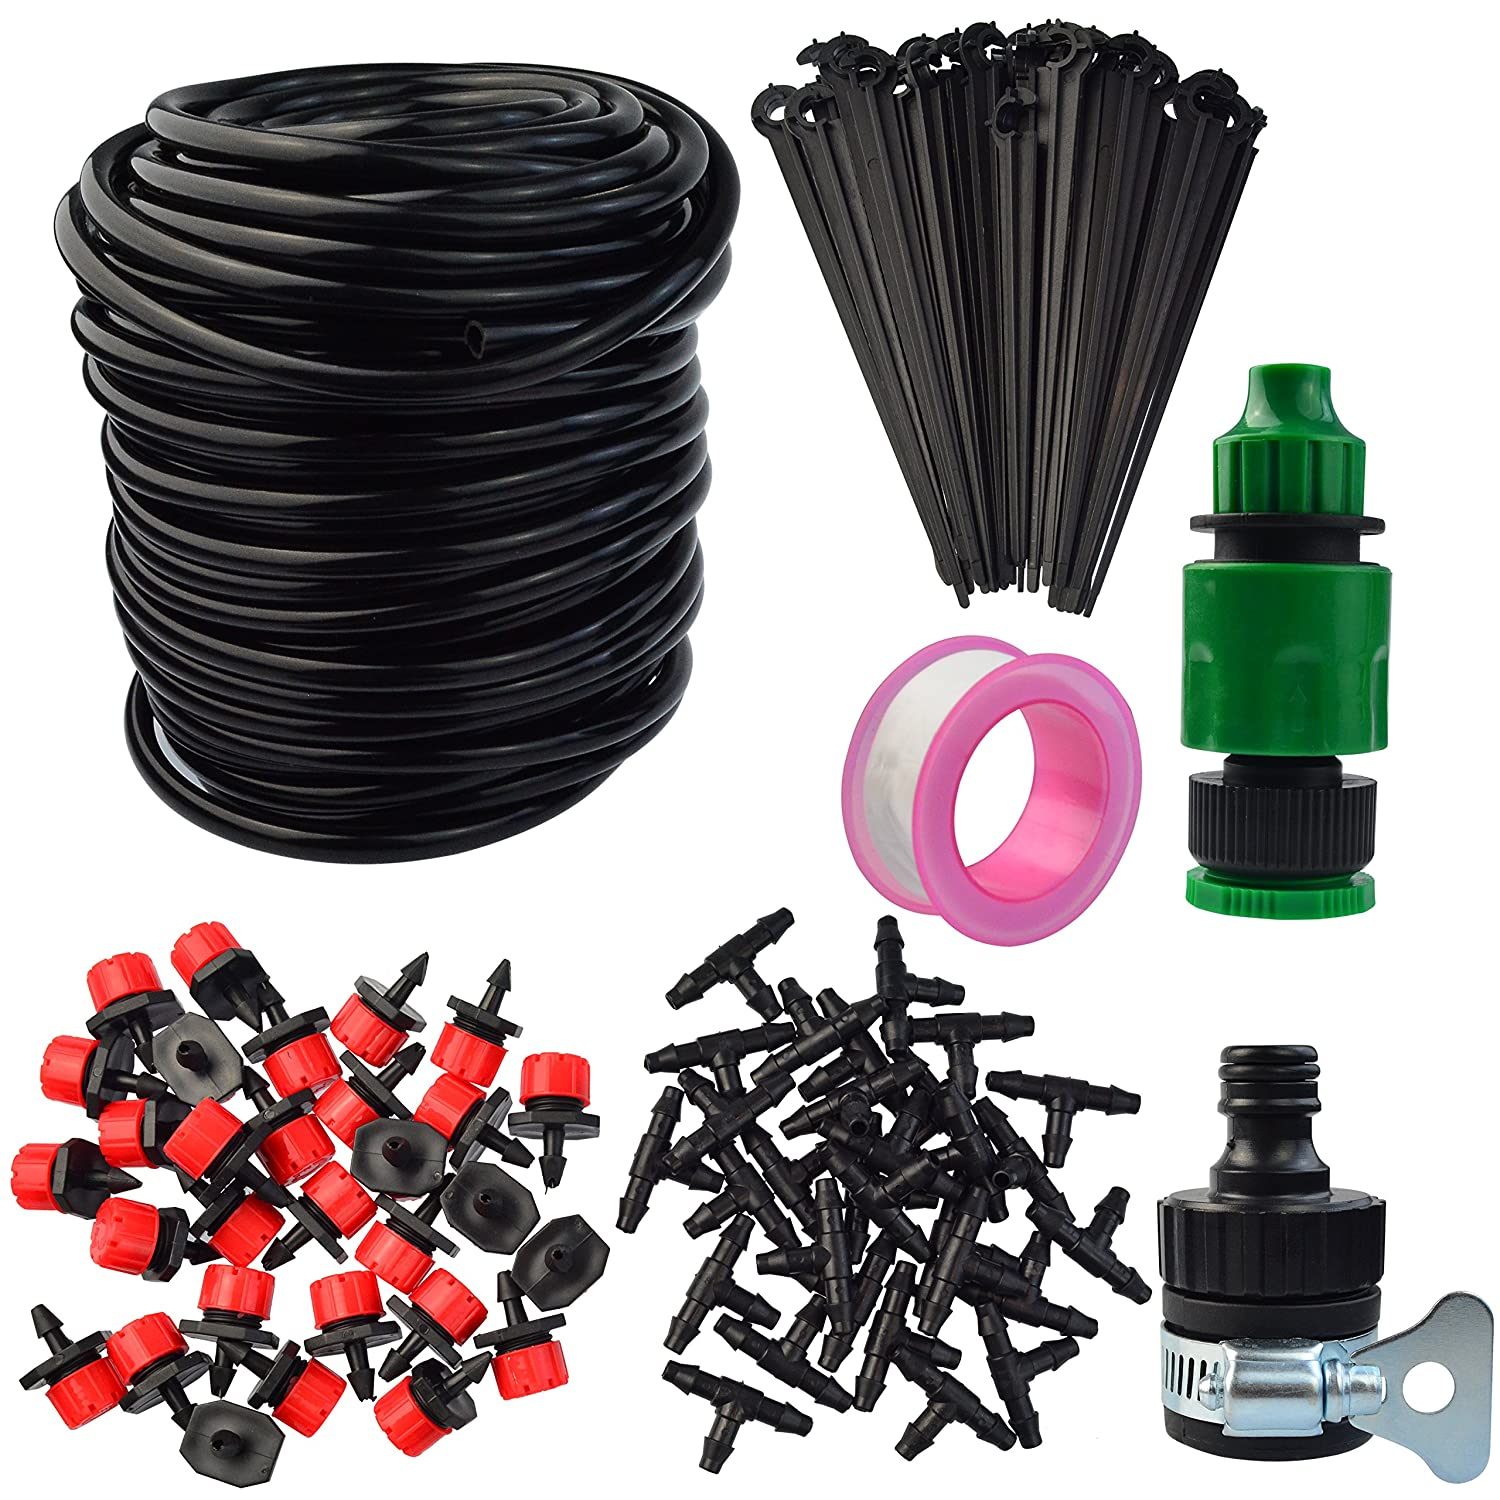 Mifengdaer 94pcs/set Adjustable Micro Irrigation Kit Dripworks Watering Irrigation System Automatic Garden Irrigation Kit Misting Cooling System DIY Patio Watering Kit for Large Garden, Grass, Lawn, Outdoor Plant, Yard, Landscape, Tree 984